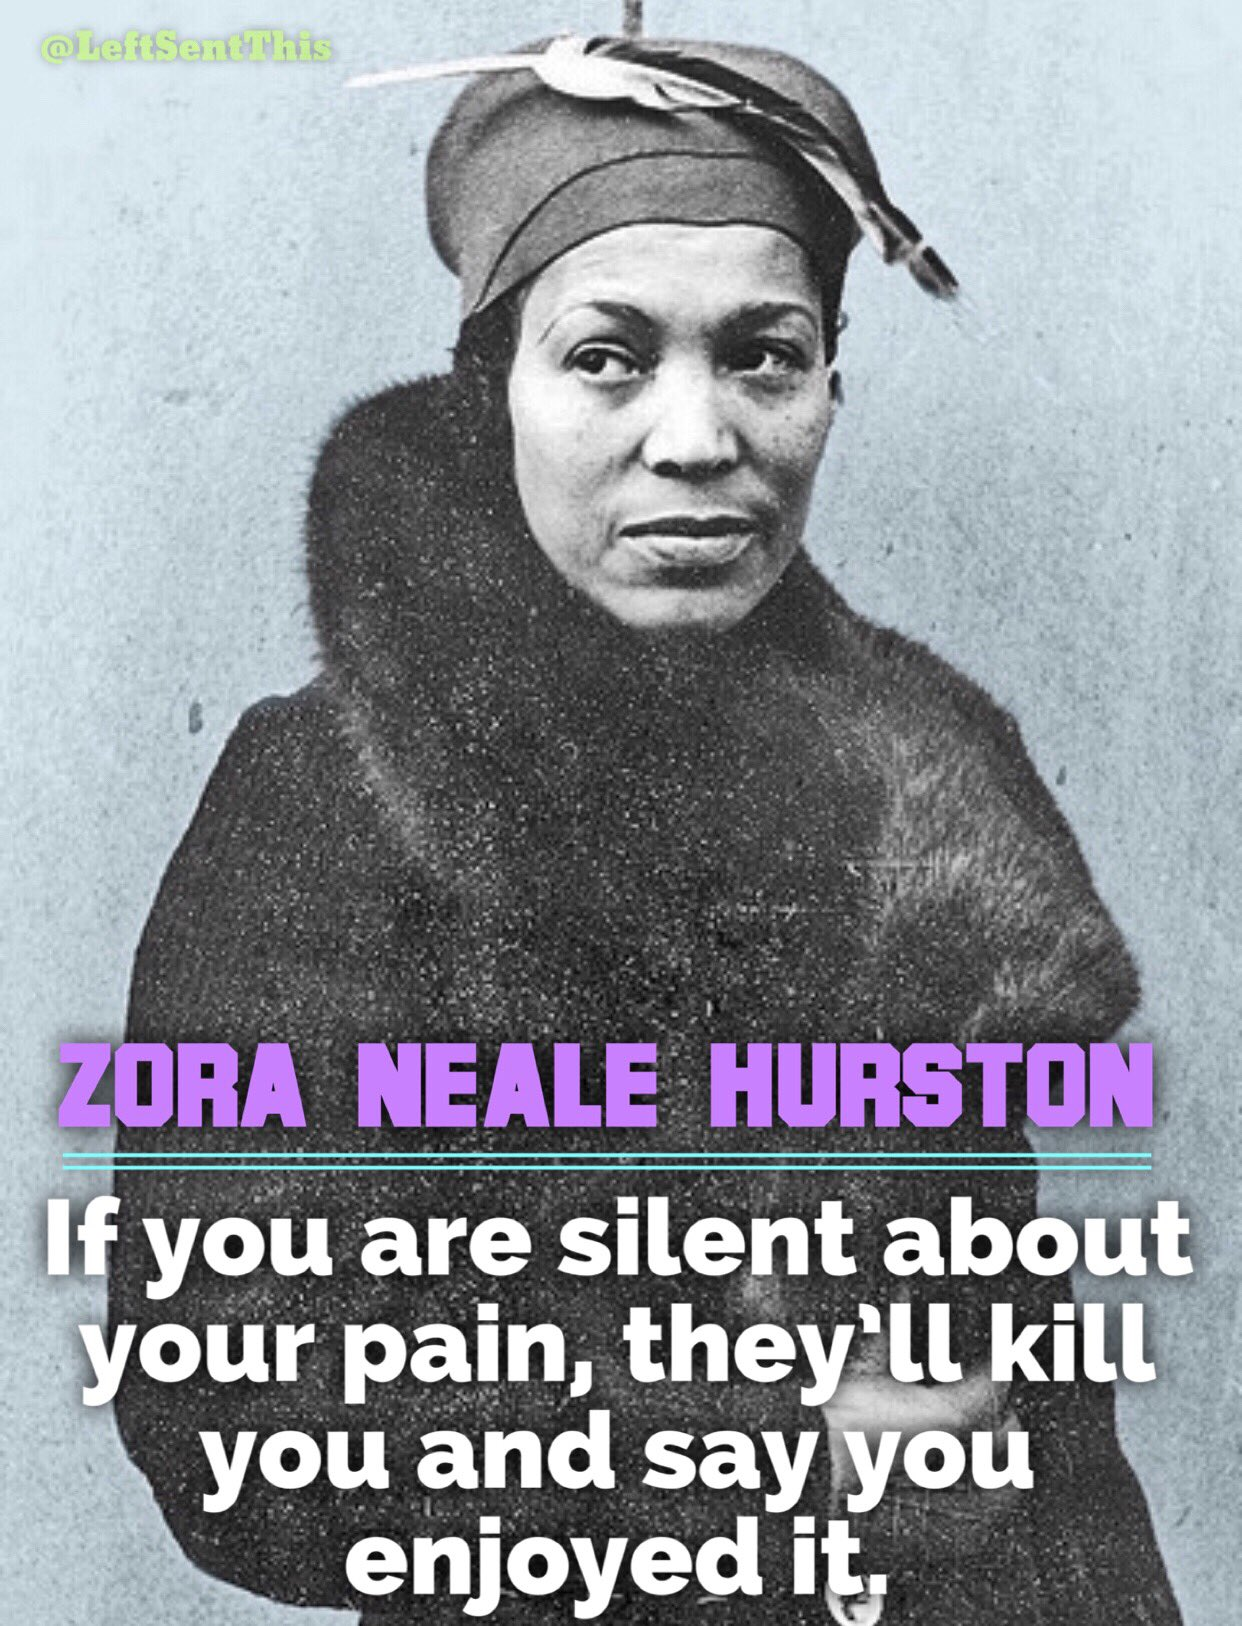 'If you are silent about your pain, they'll kill you and say you enjoyed it.'-Zora Neale Hurston https://t.co/zrJx8bbl5v